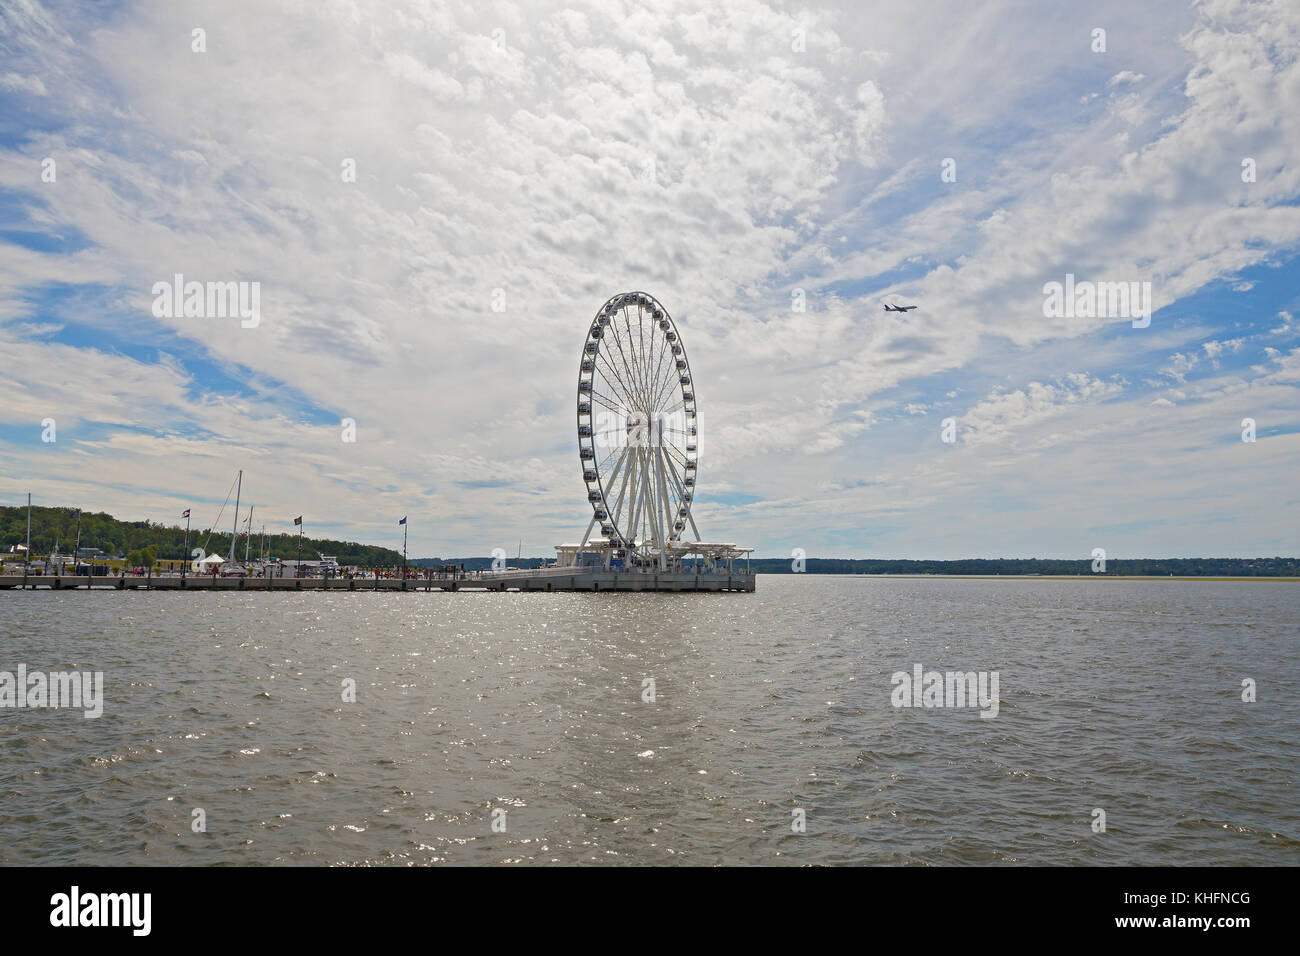 Sun shines through cumulus clouds on the Ferris of National Harbor in Oxon Hill, Maryland, USA. National Harbor - Stock Image